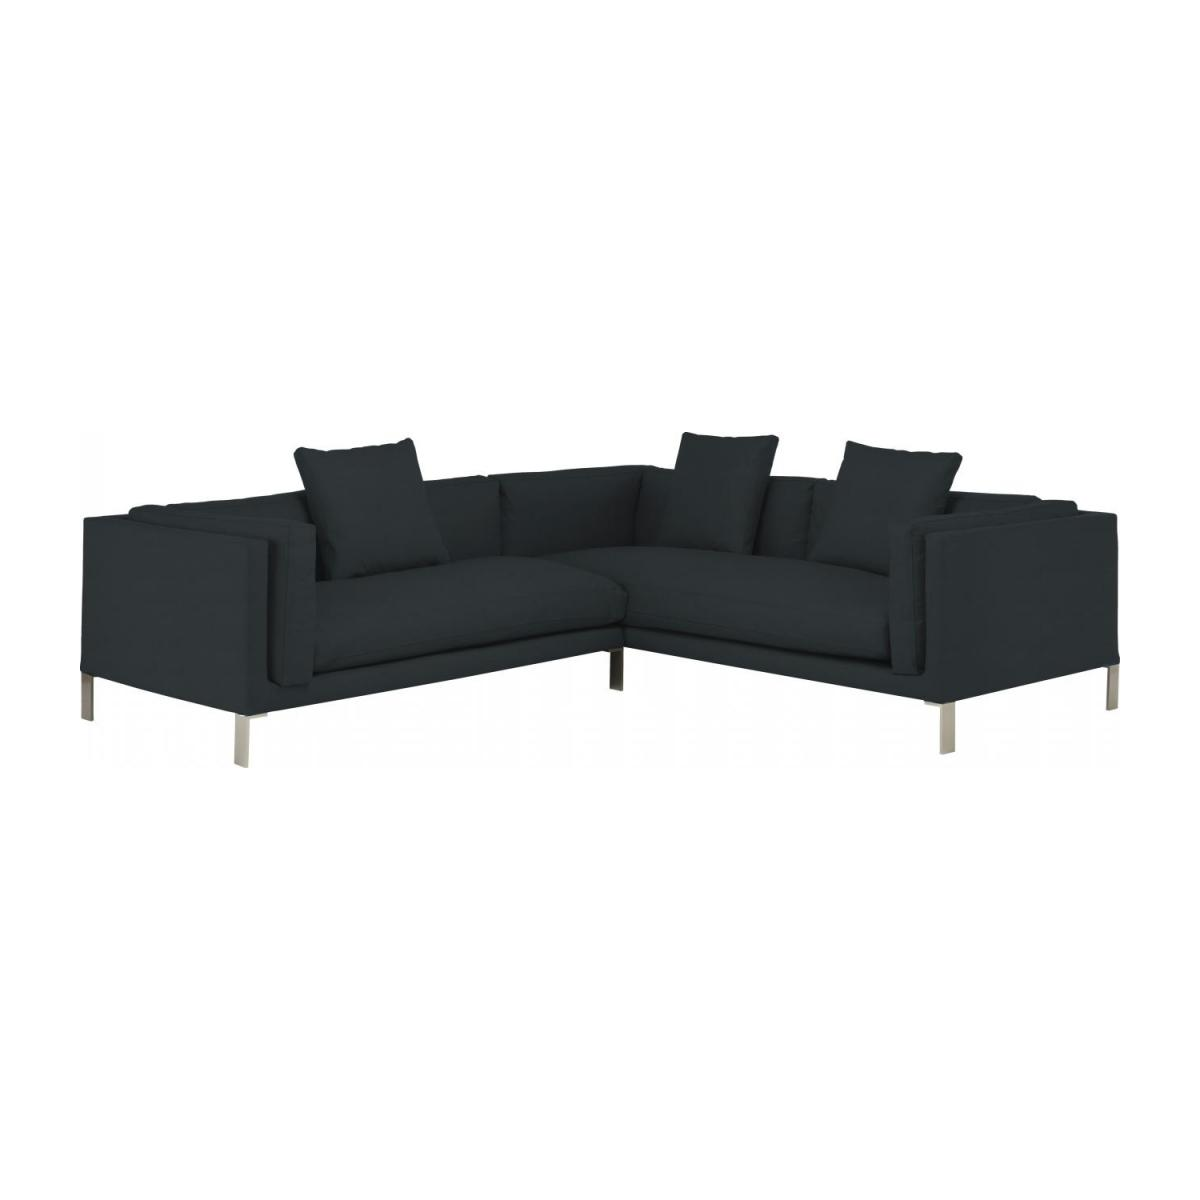 Leather left-arm 2 seater sofa n°5